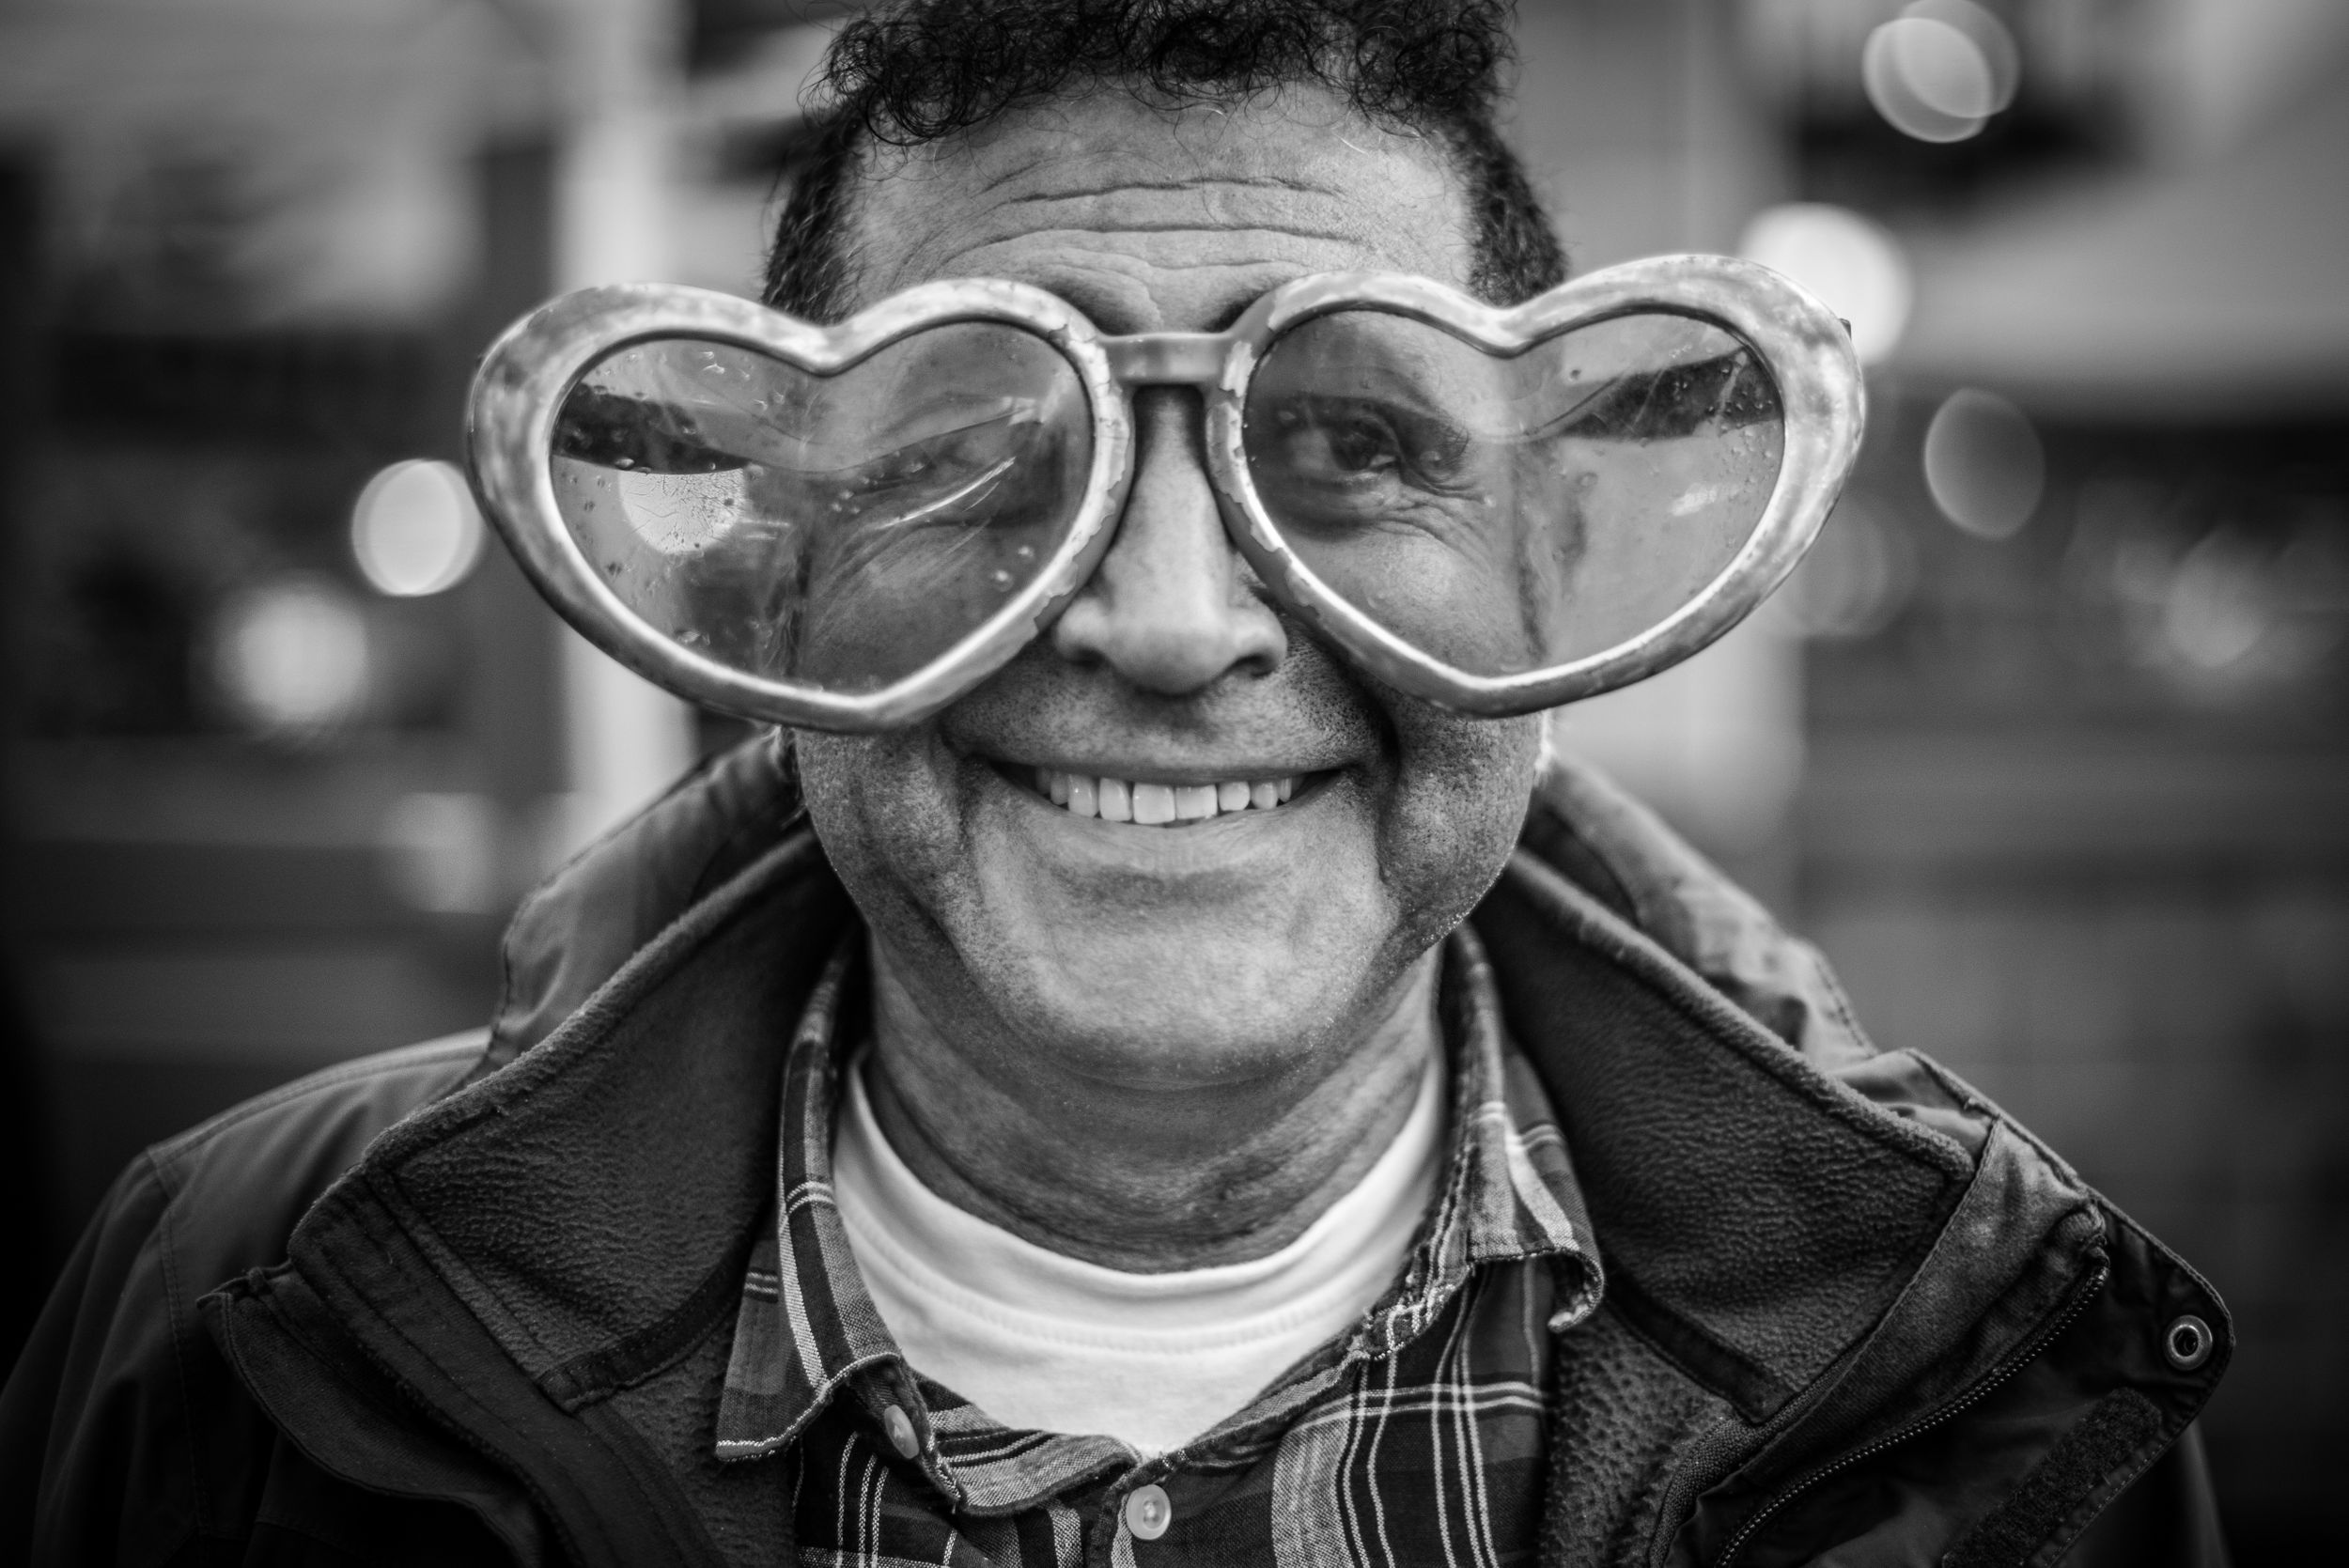 Black & White Portrait of a Stranger of a man wearing oversized heart shaped sunglasses with a slight smile on his face.